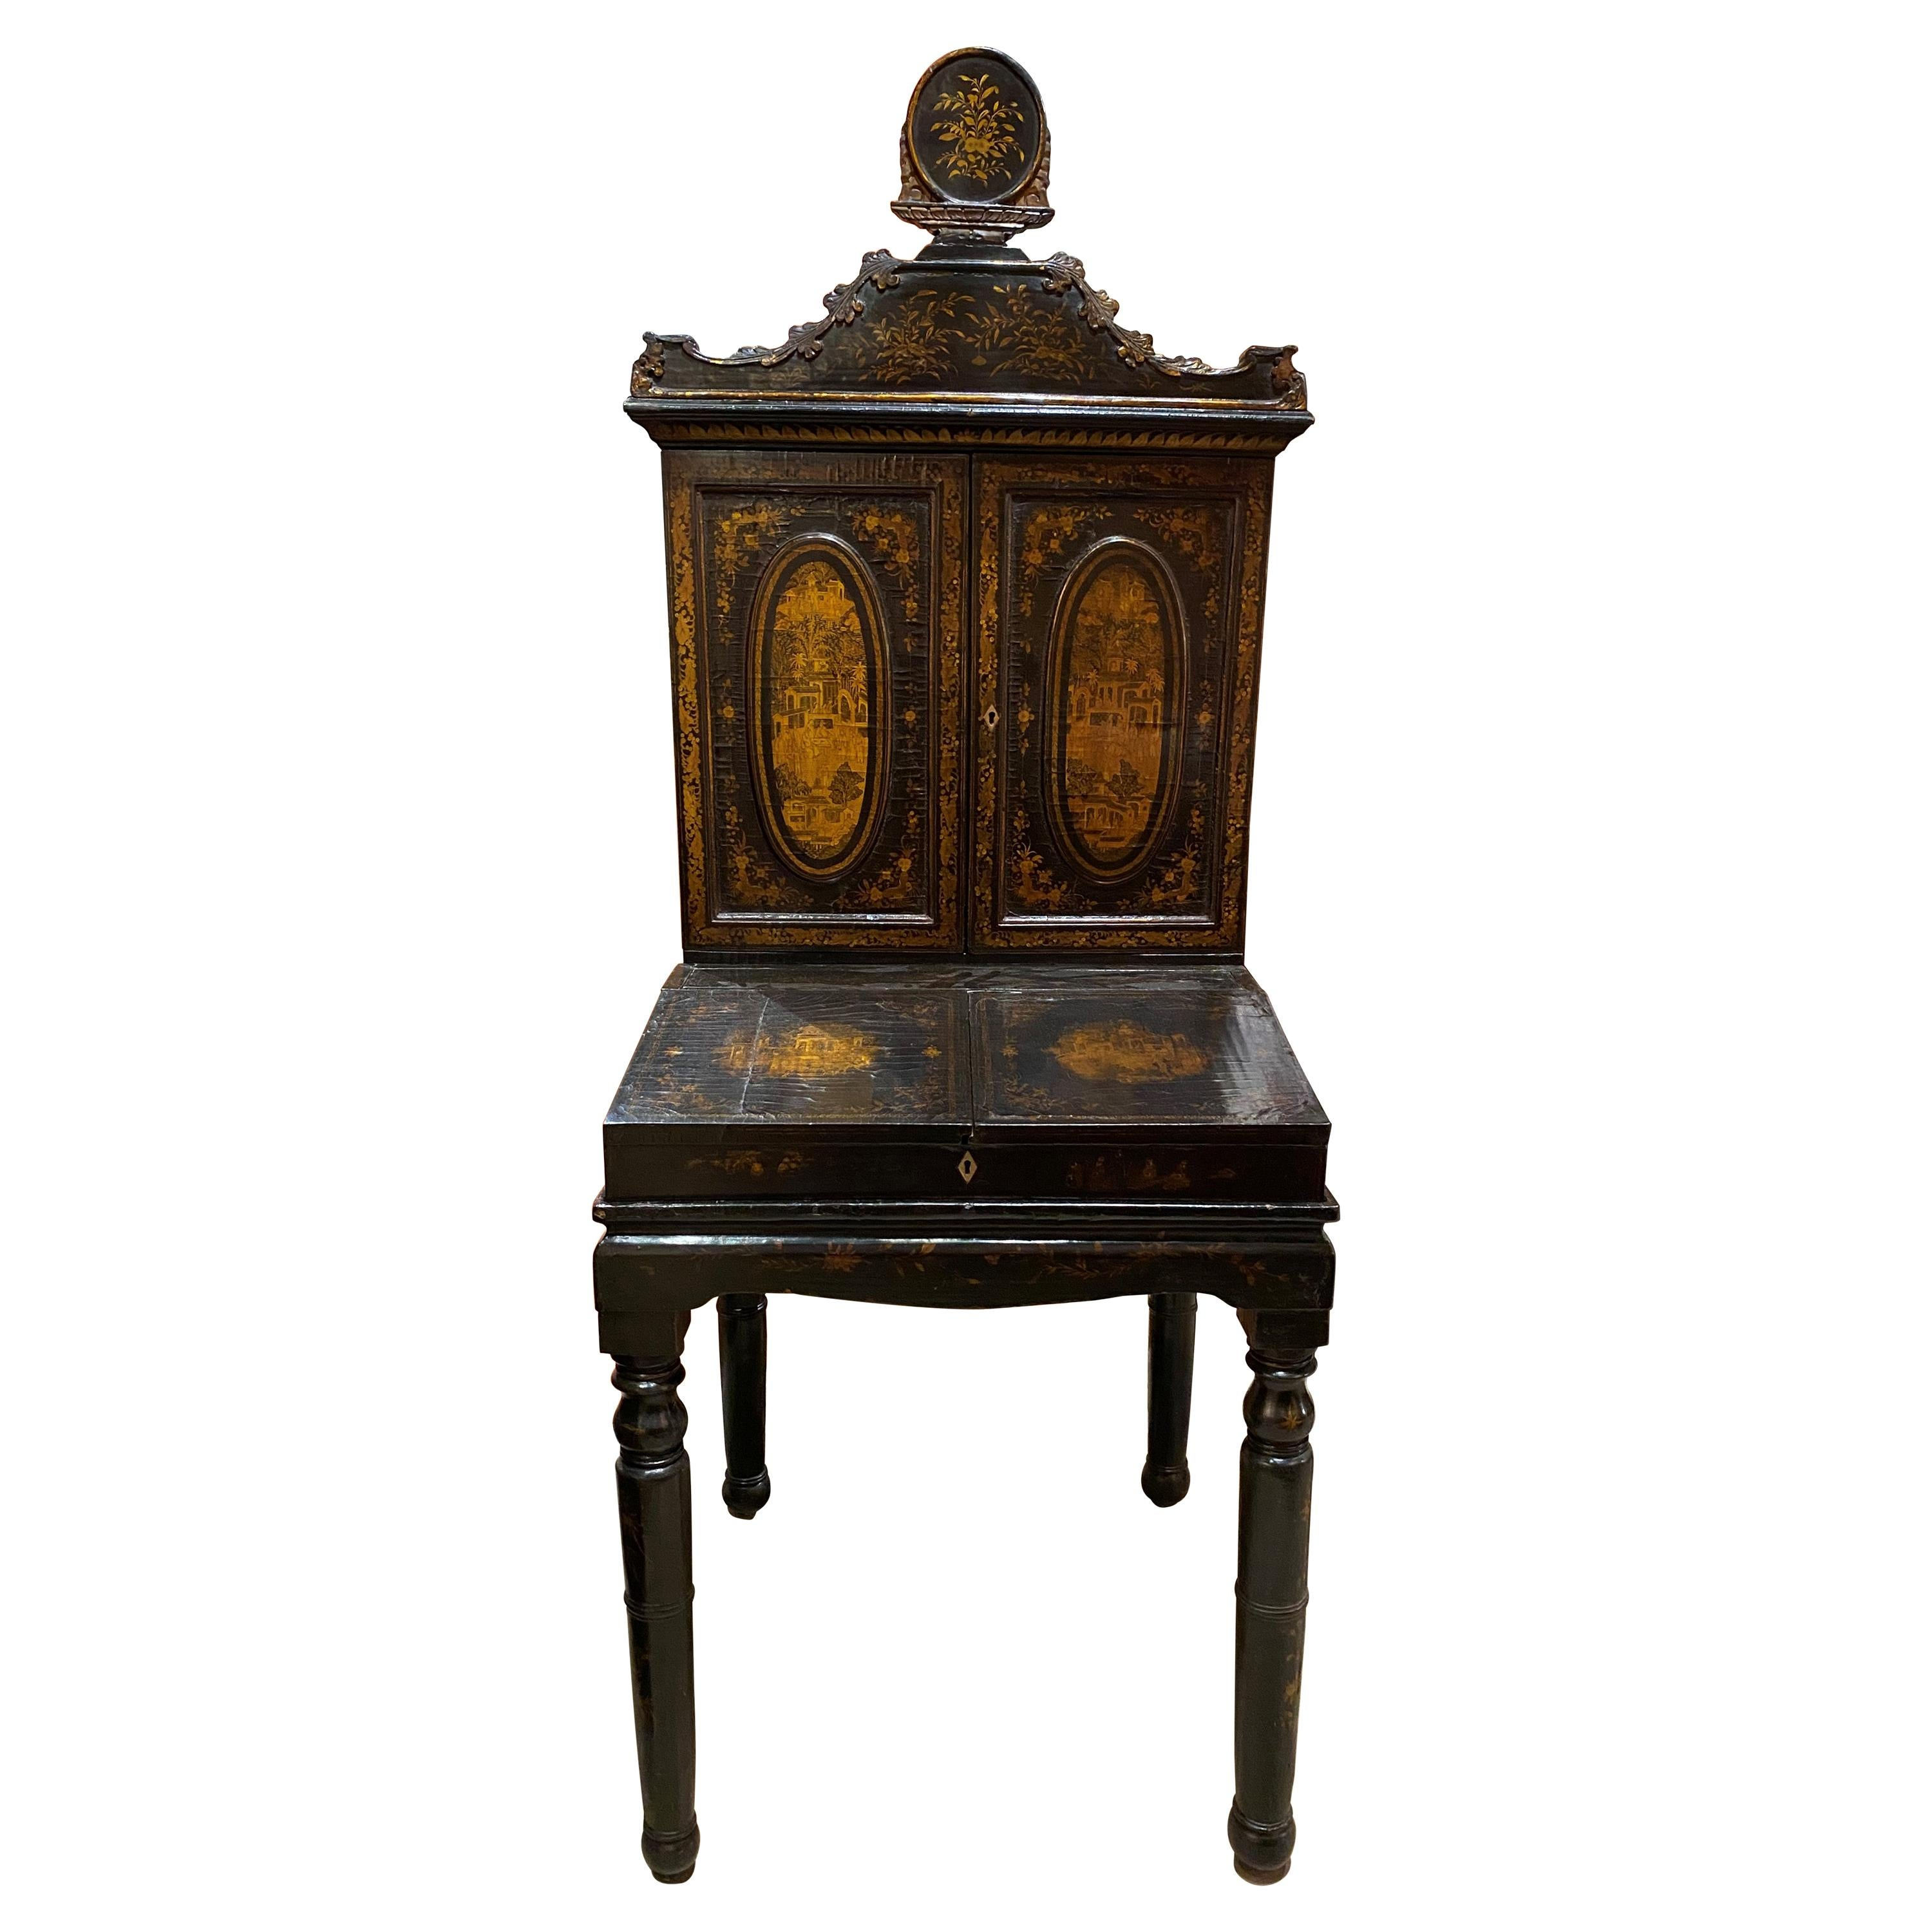 19th Century 3-Piece Diminutive Lacquer Secretary Desk with Nice Chinoiserie